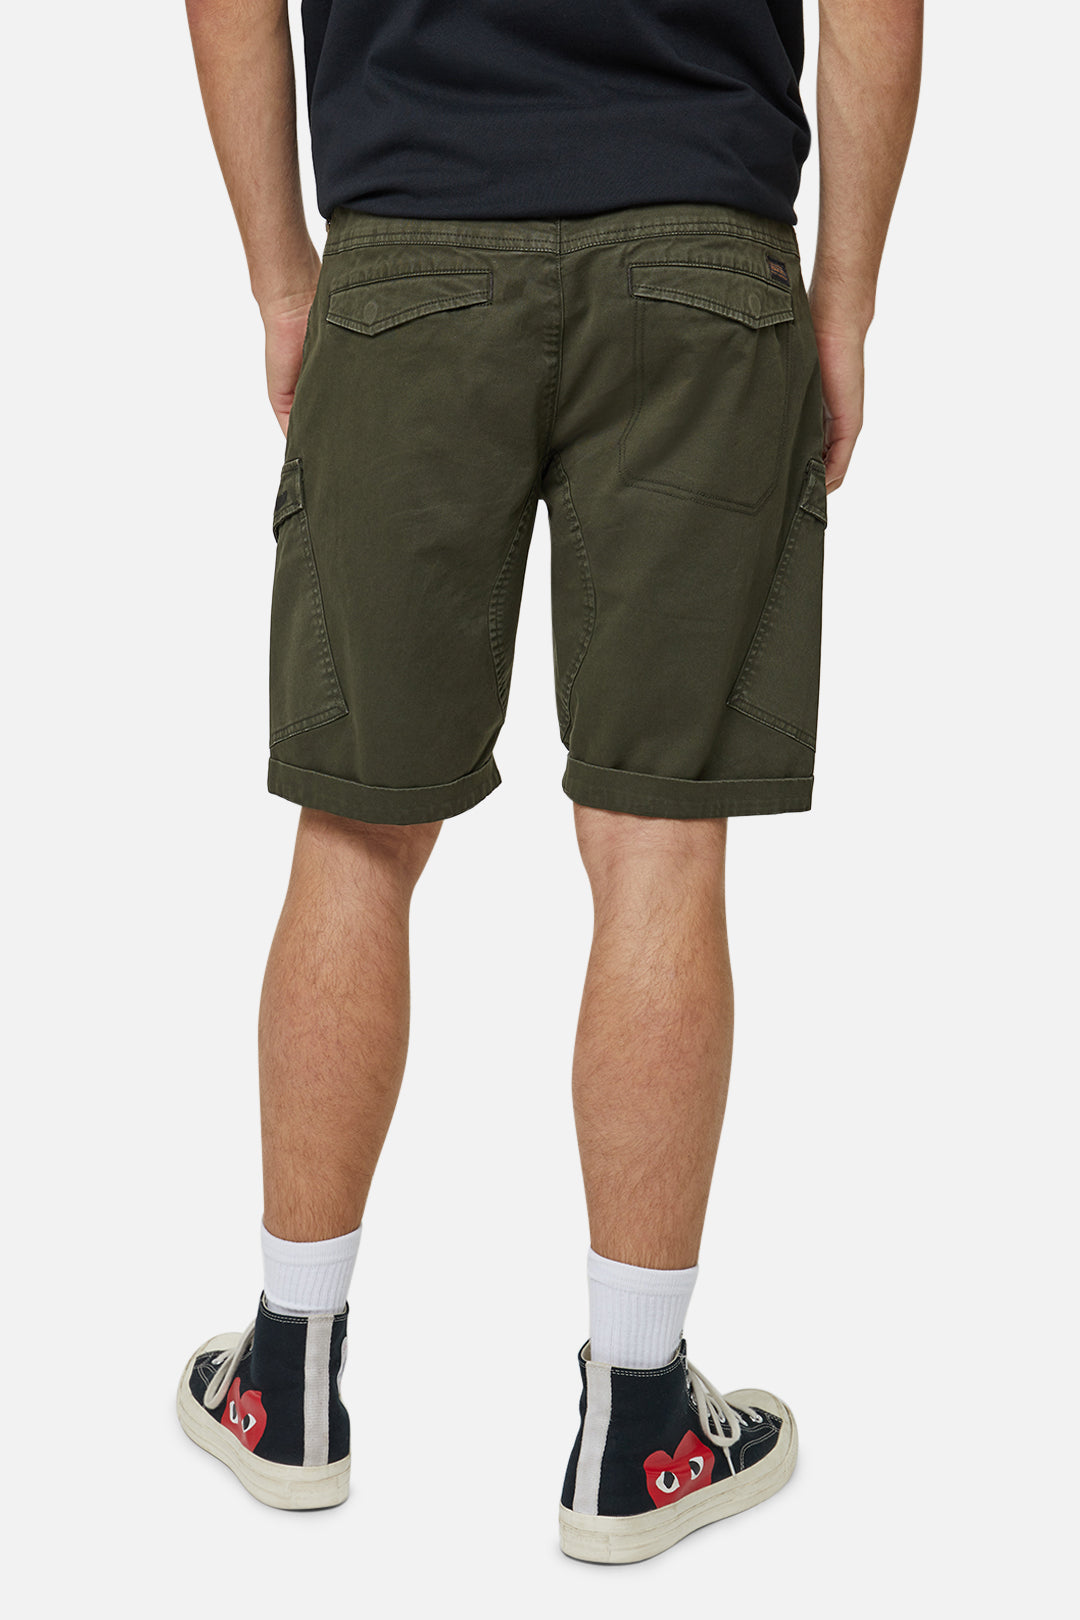 The Partisan Combat Short - Forest